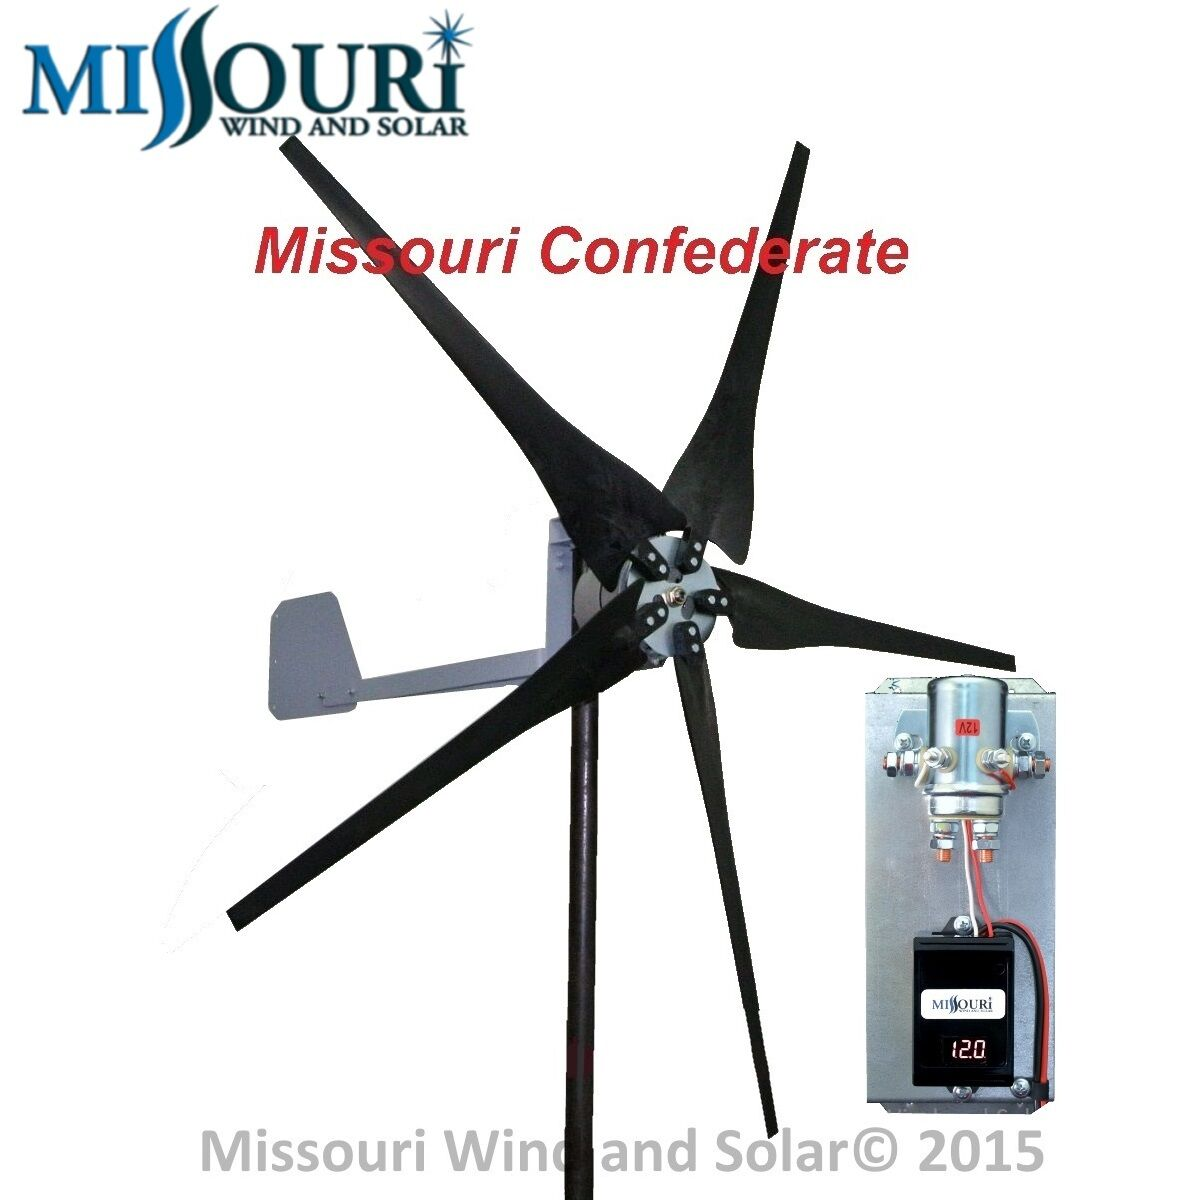 From Turbine Or Solar Panel To House Wiring Missouri Wind And Solar